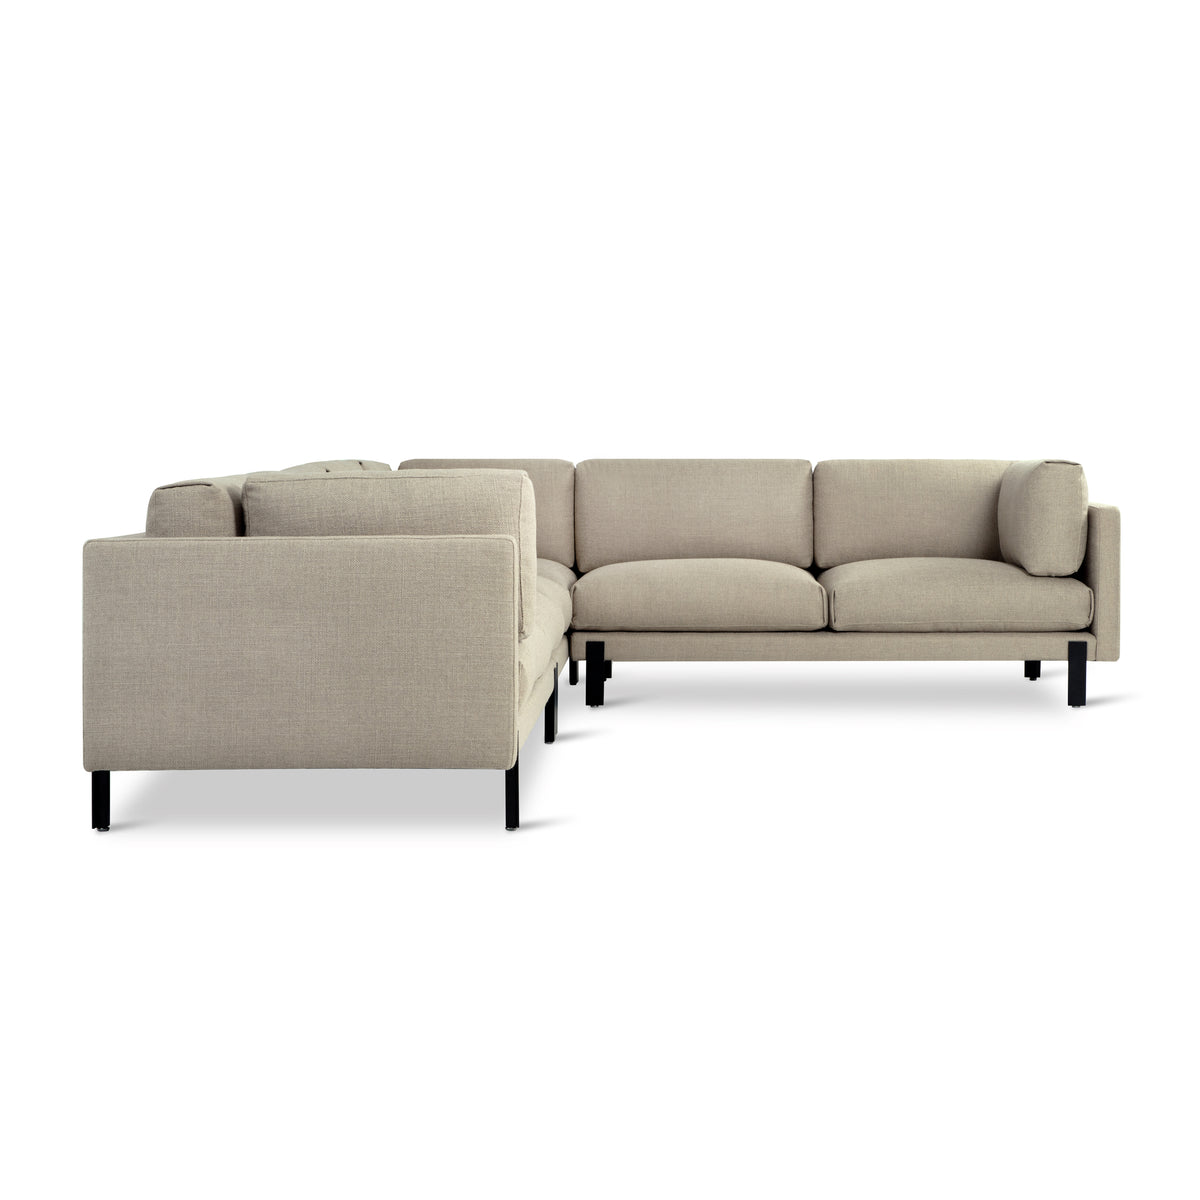 Silverlake XL Sectional - Right Facing